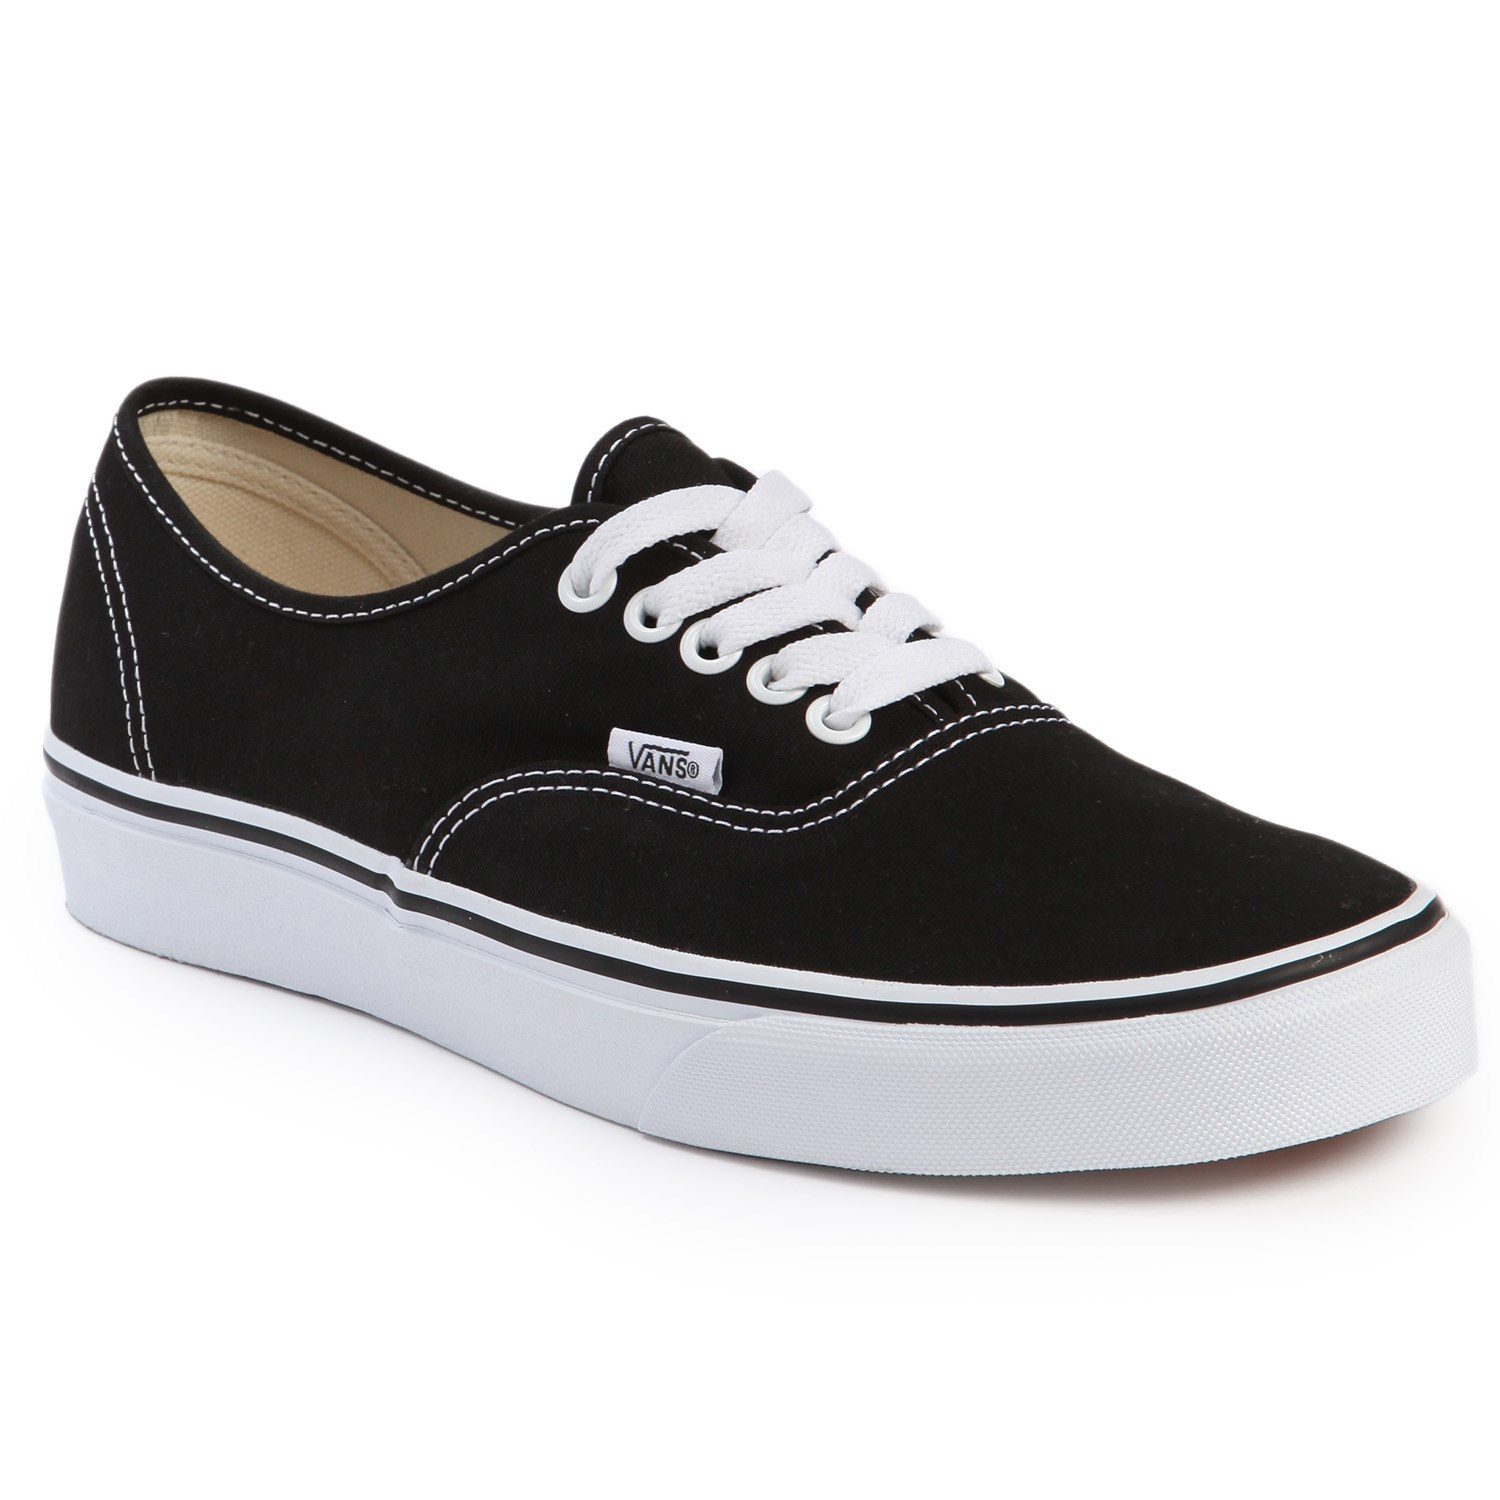 Unique Vans Women39s Old Skool Shoes  Black  Free Shipping